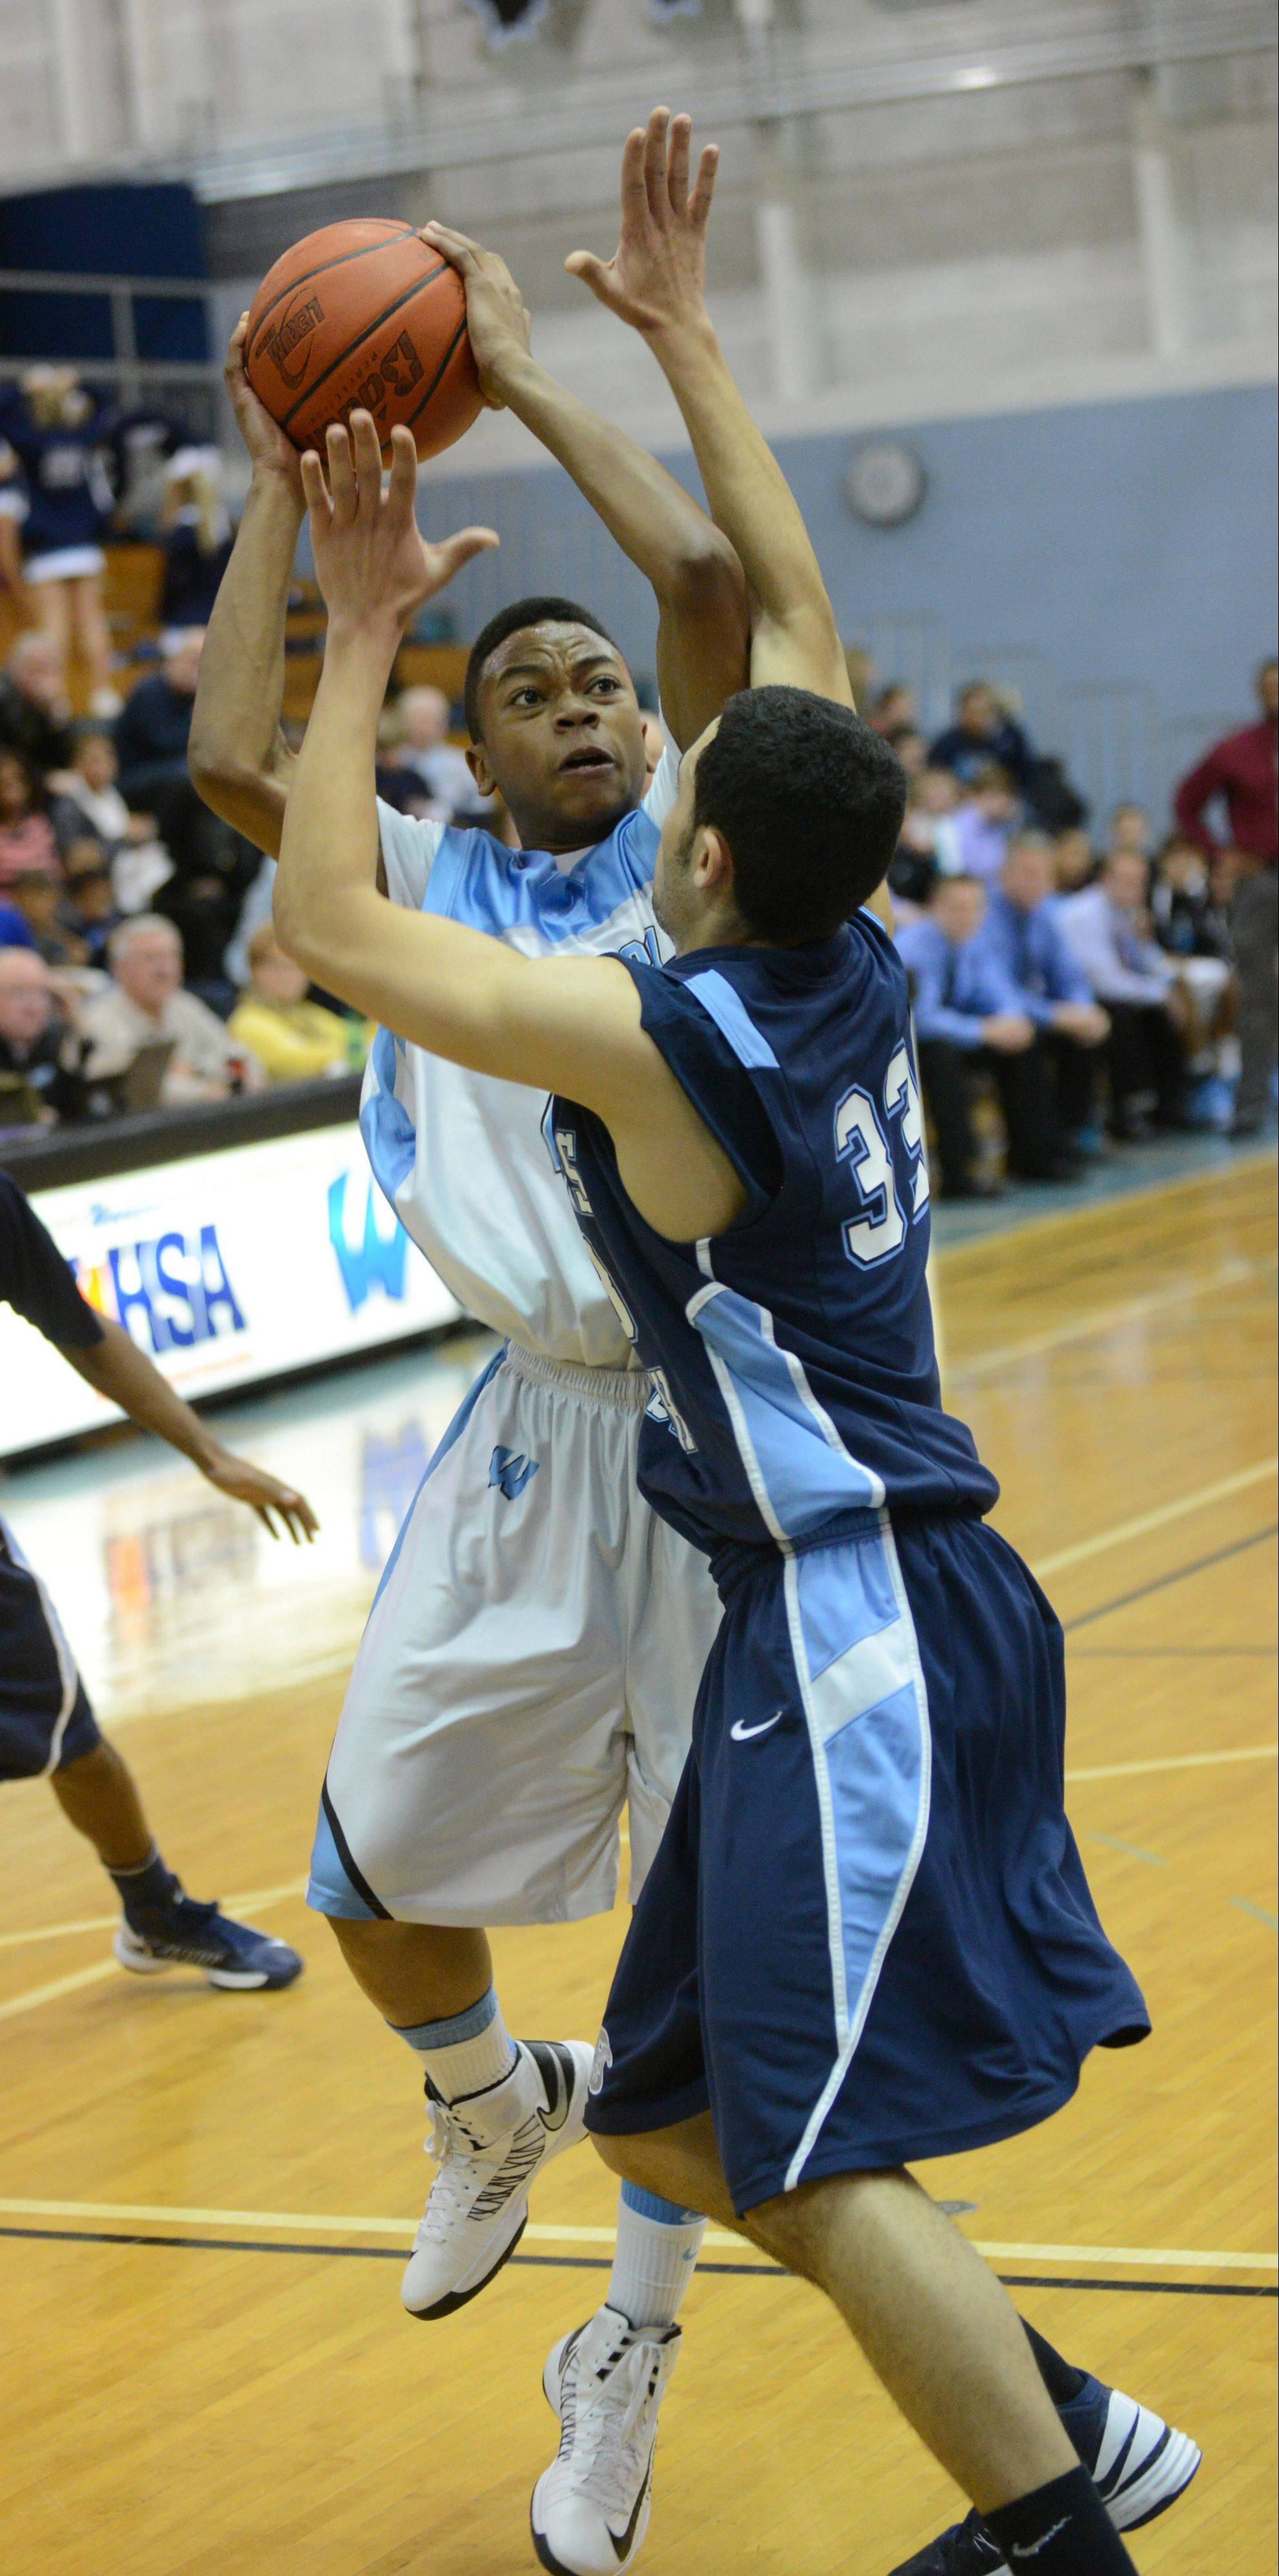 Yashau Trent of Willowbrook puts up a shot over Downers Grove South's Jordan Cannon in West Suburban Gold play Friday in Villa Park.